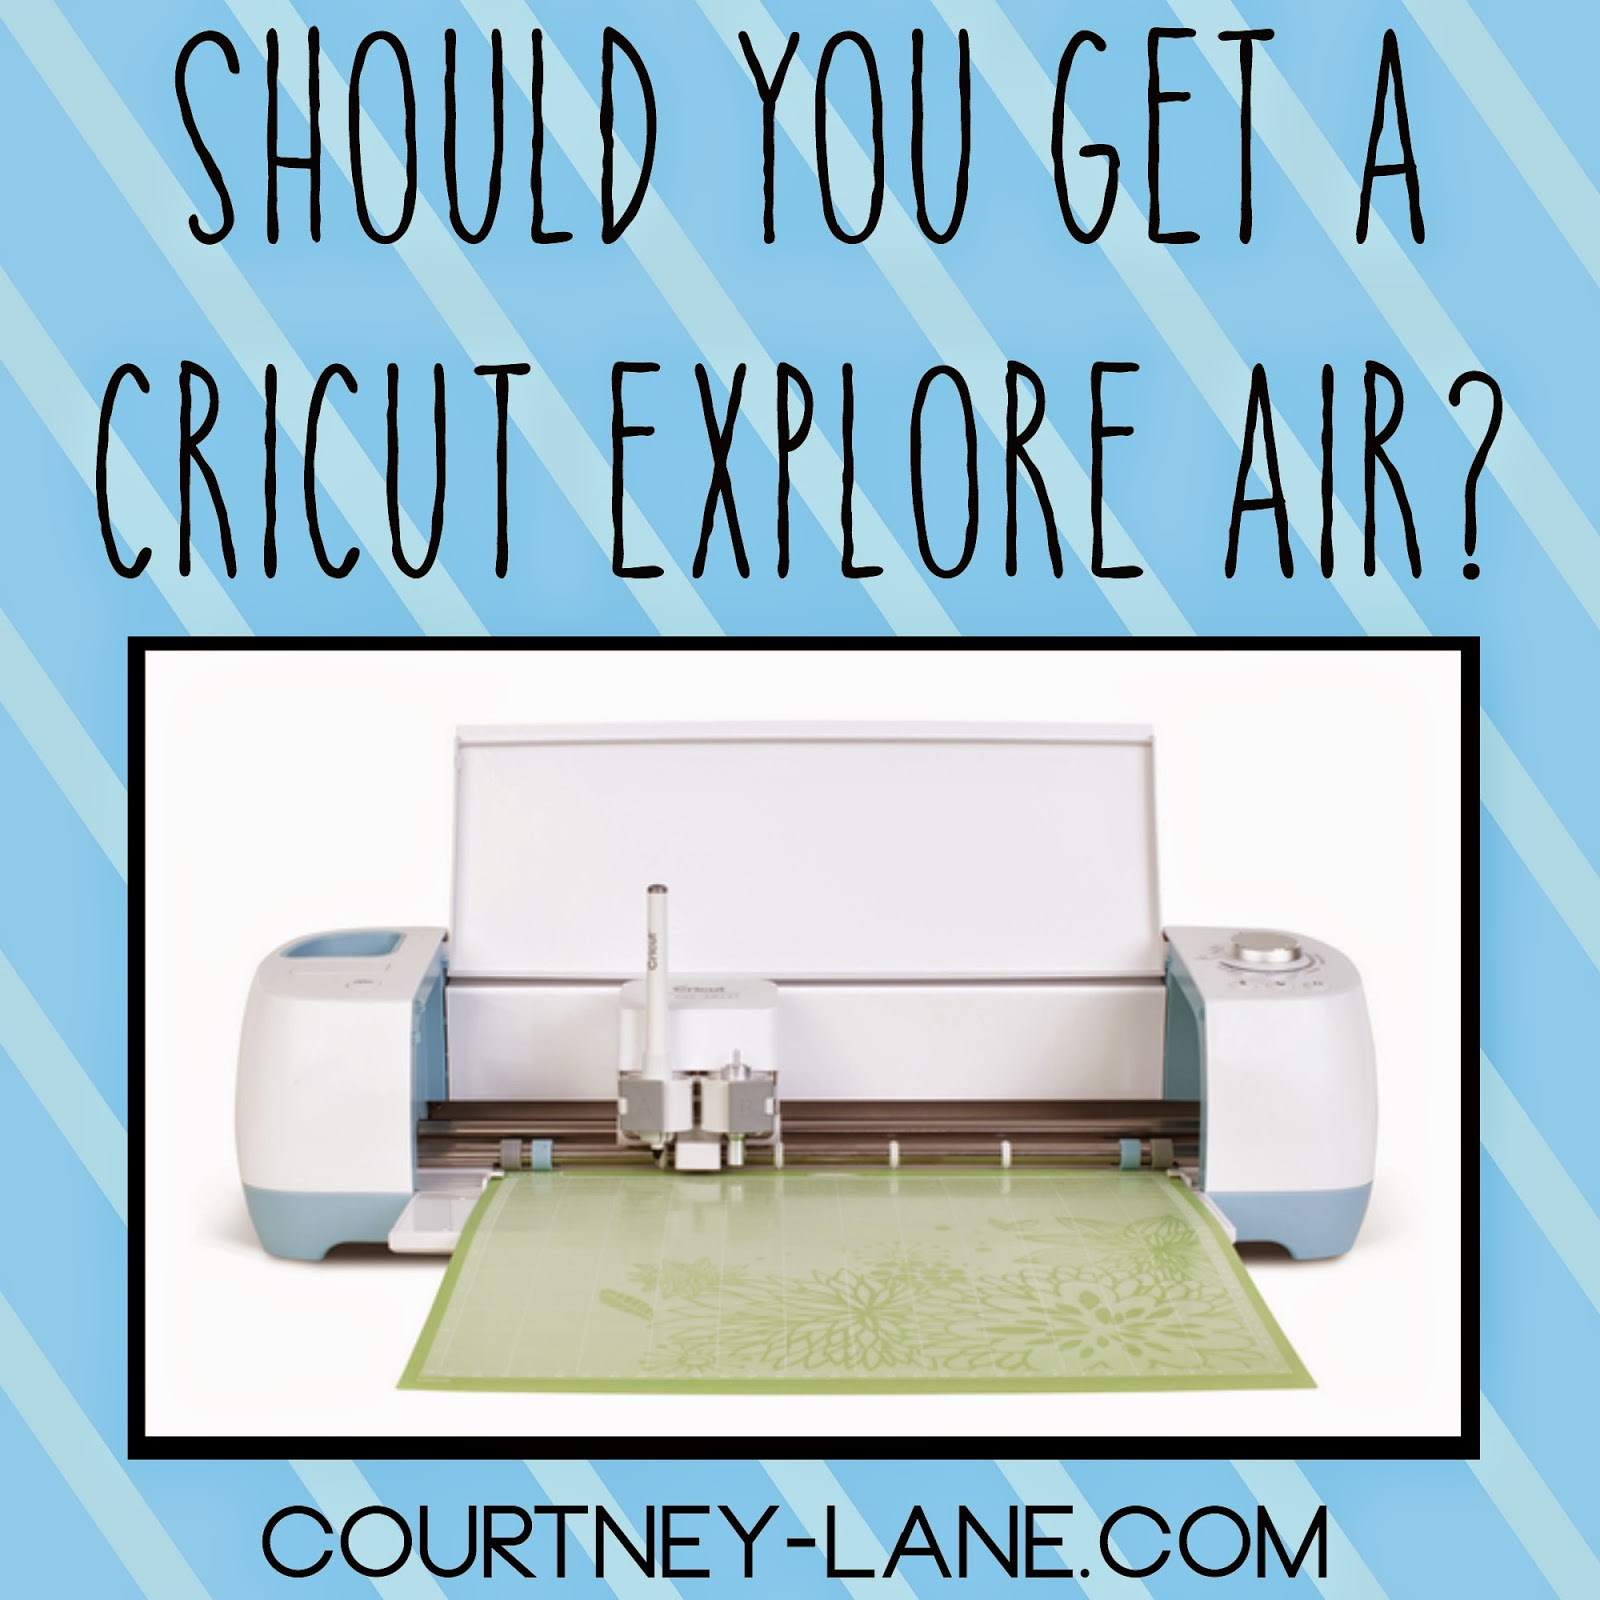 Should you get a Cricut Explore Air